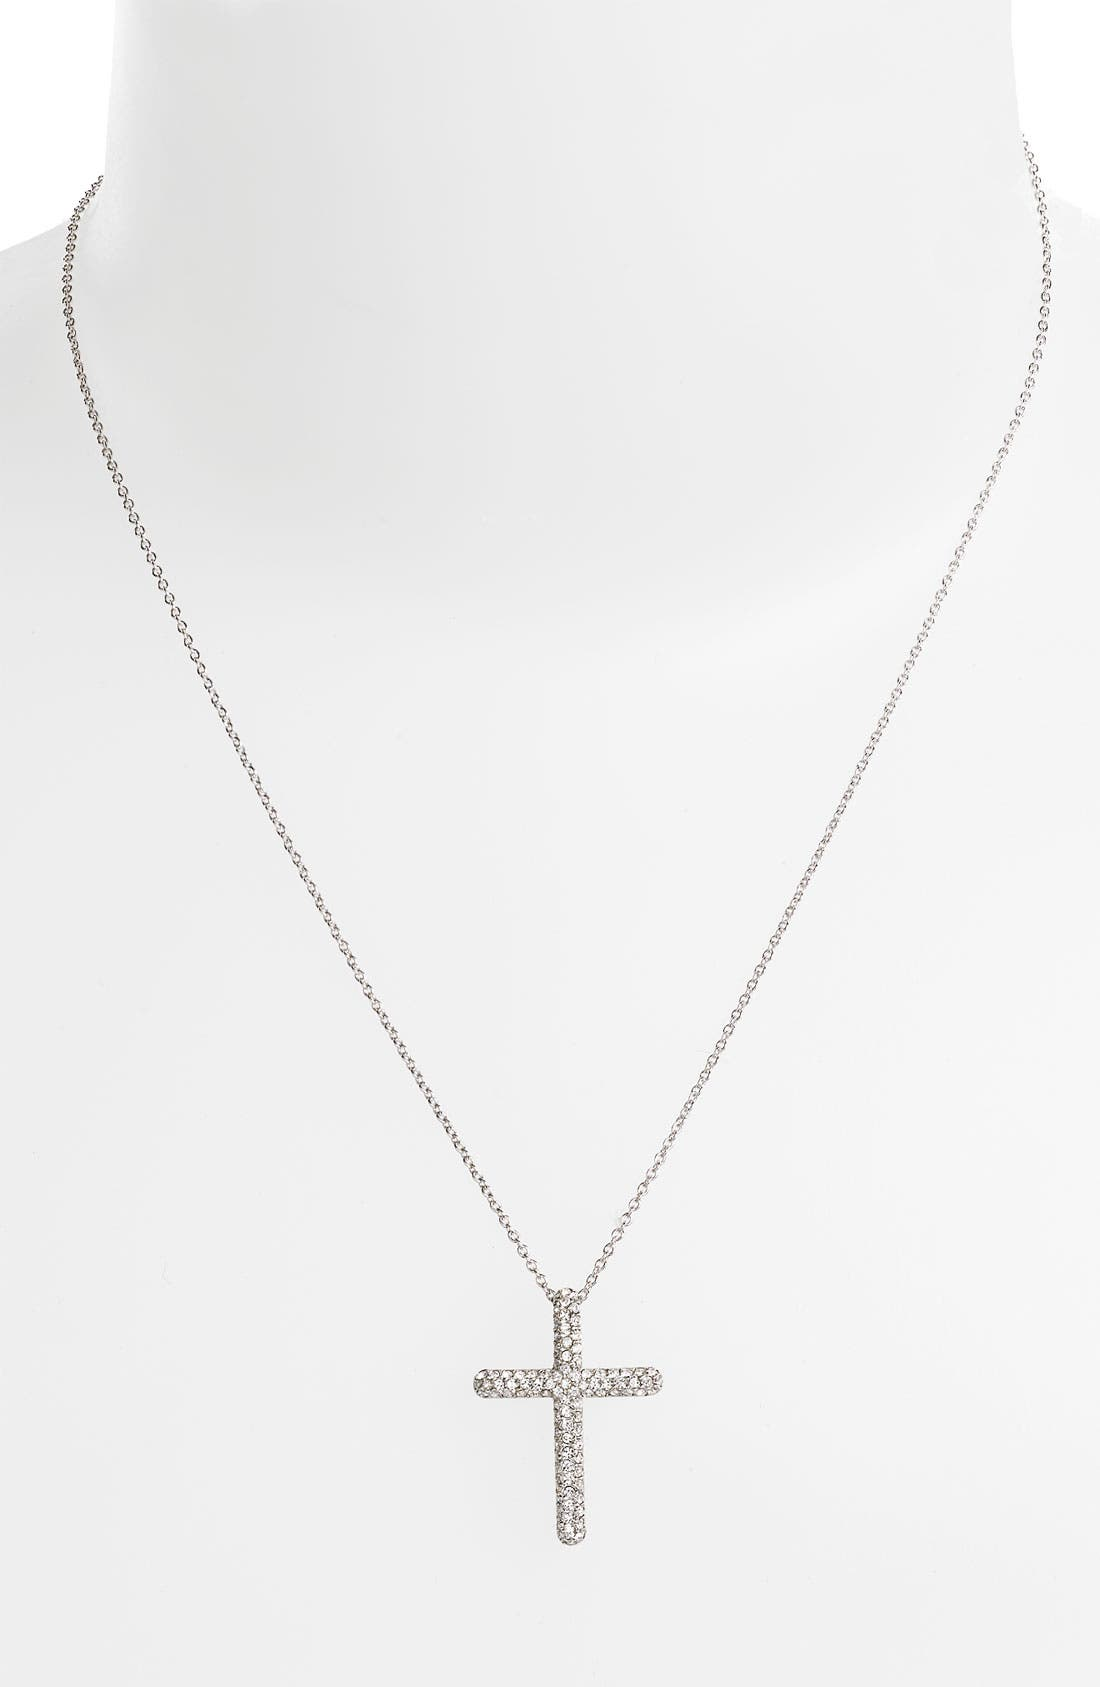 Alternate Image 1 Selected - Nadri Small Cross Pendant Necklace (Nordstrom Exclusive)